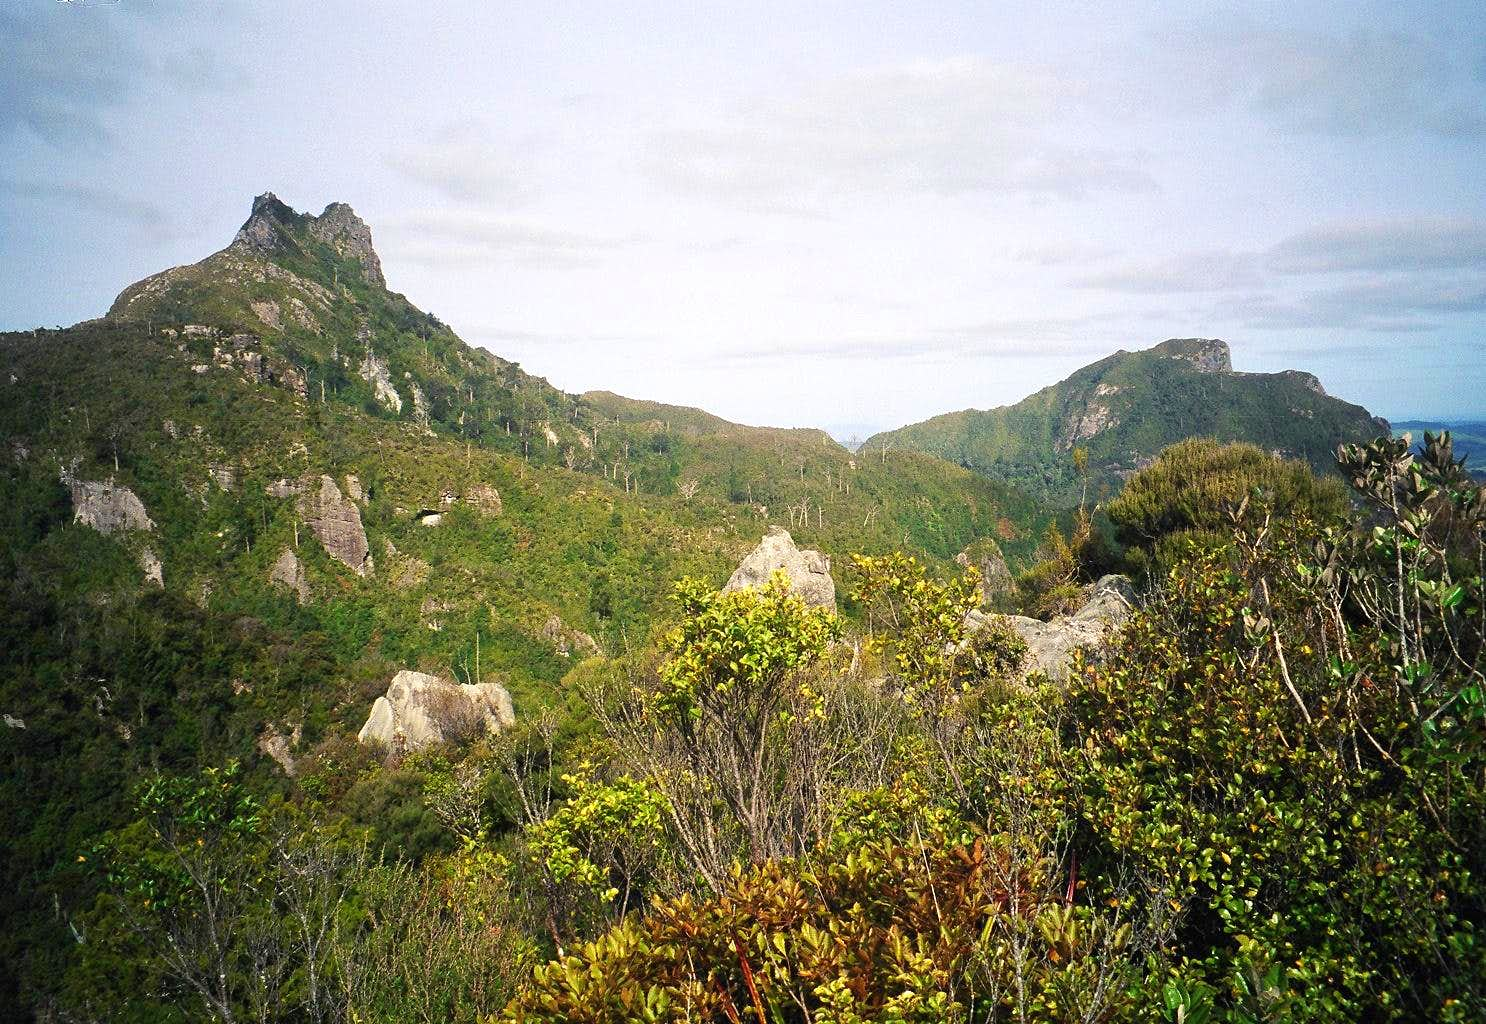 The Kauaeranga Valley Pinnacles